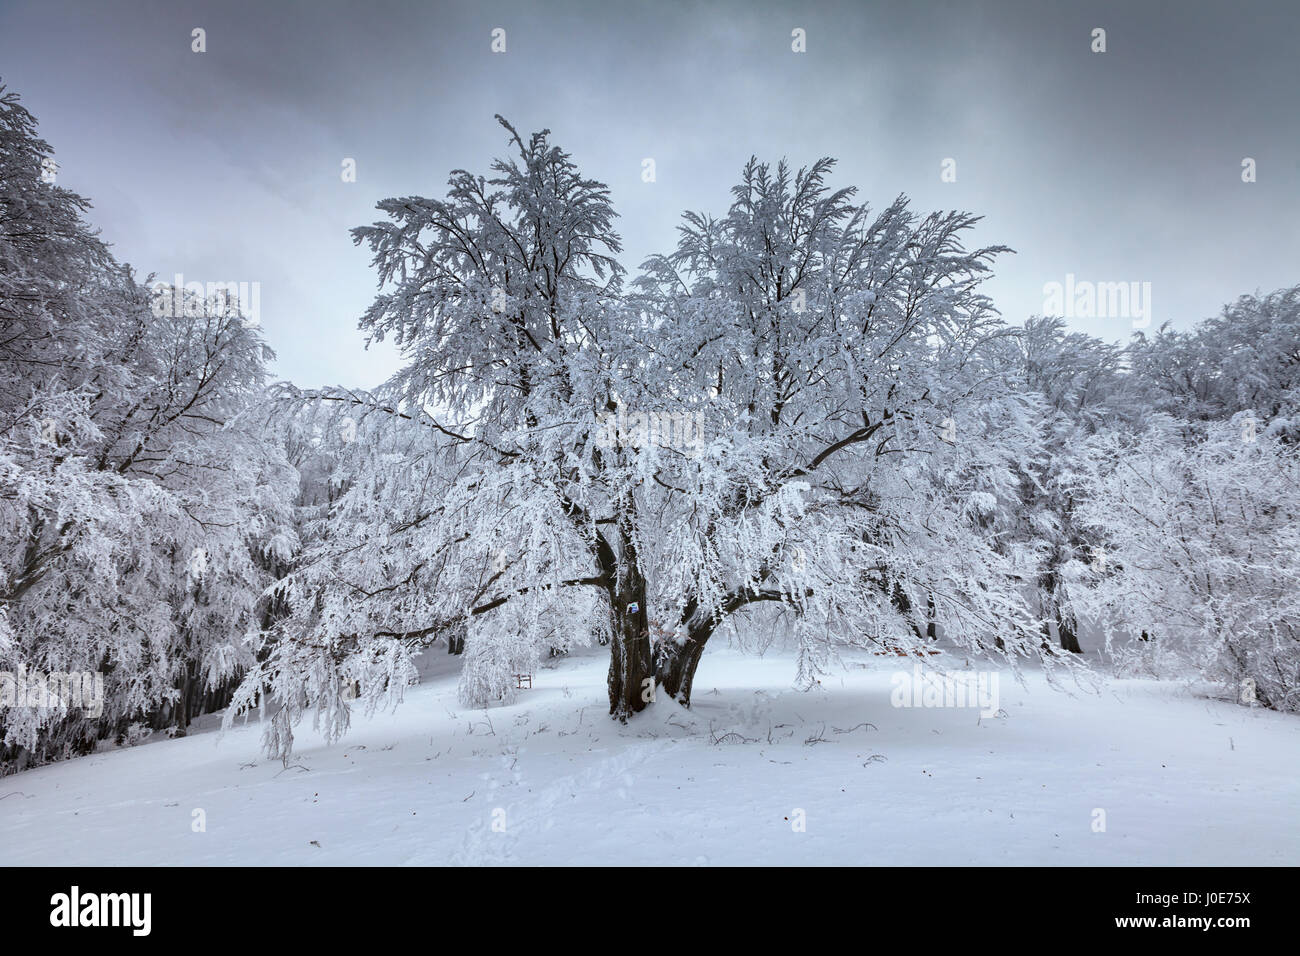 A deciduous tree covered in heavy snow - Stock Image